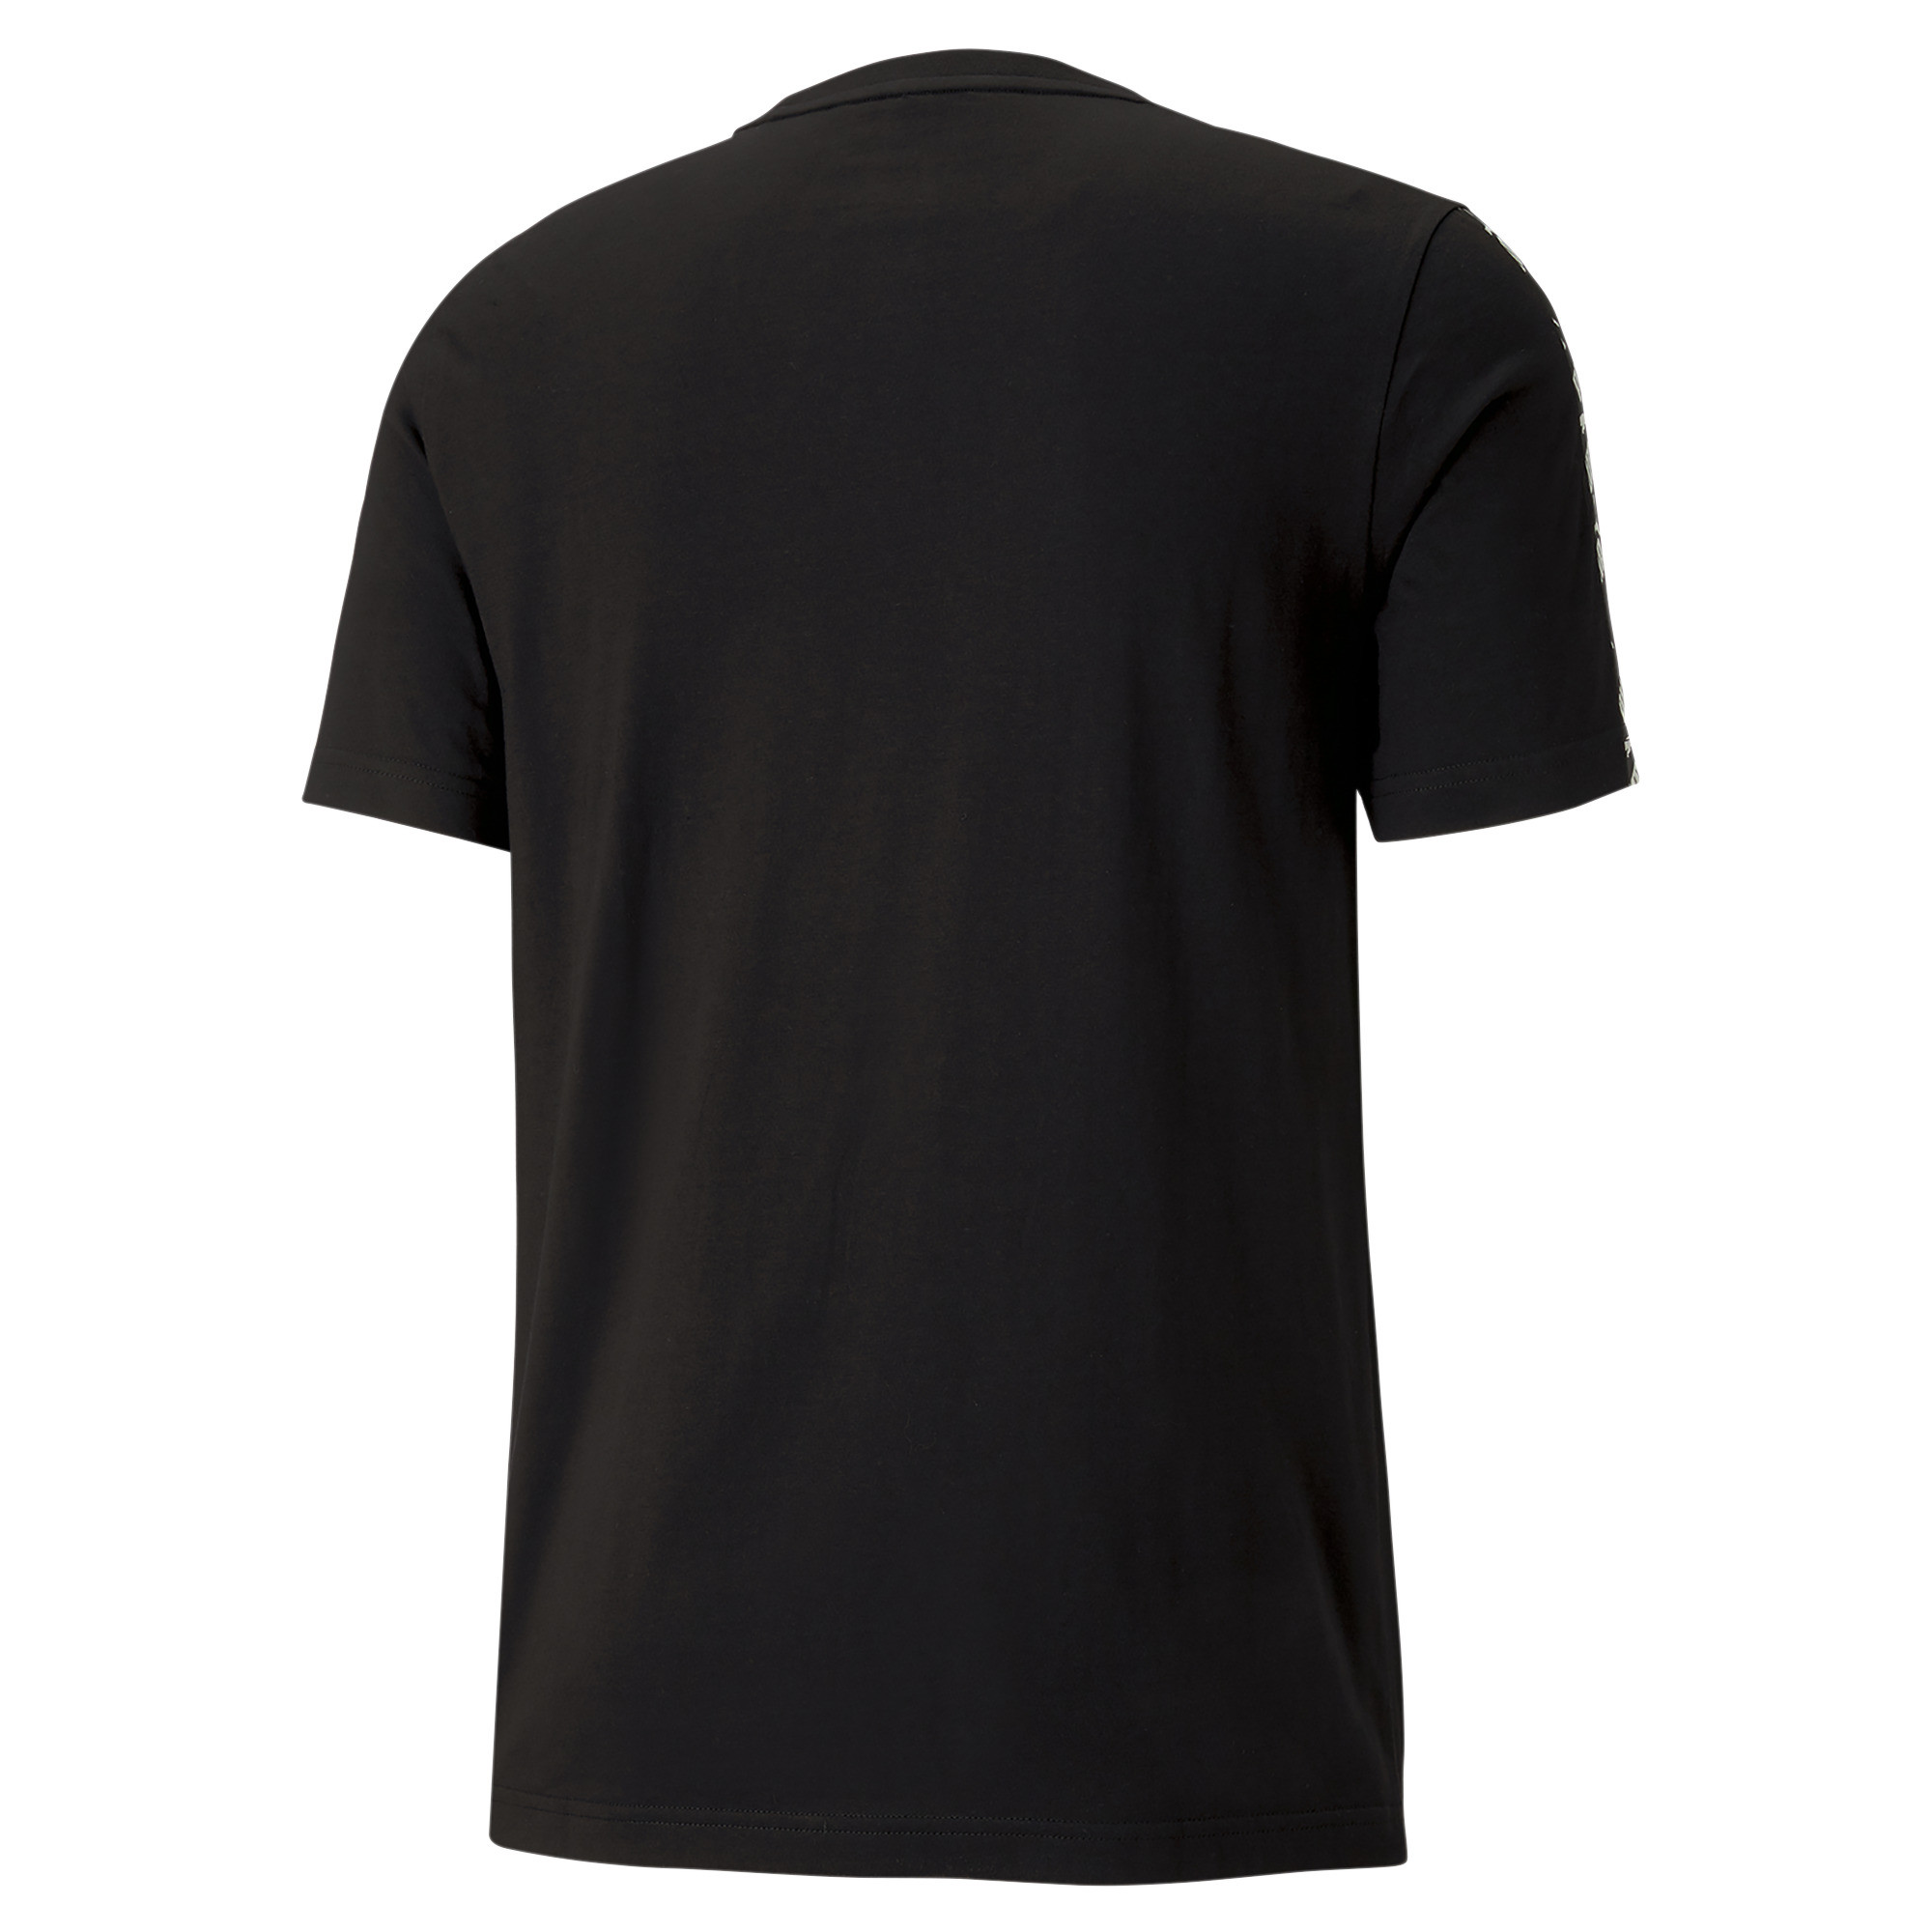 PUMA-Amplified-Men-039-s-Tee-Men-Tee-Basics thumbnail 7